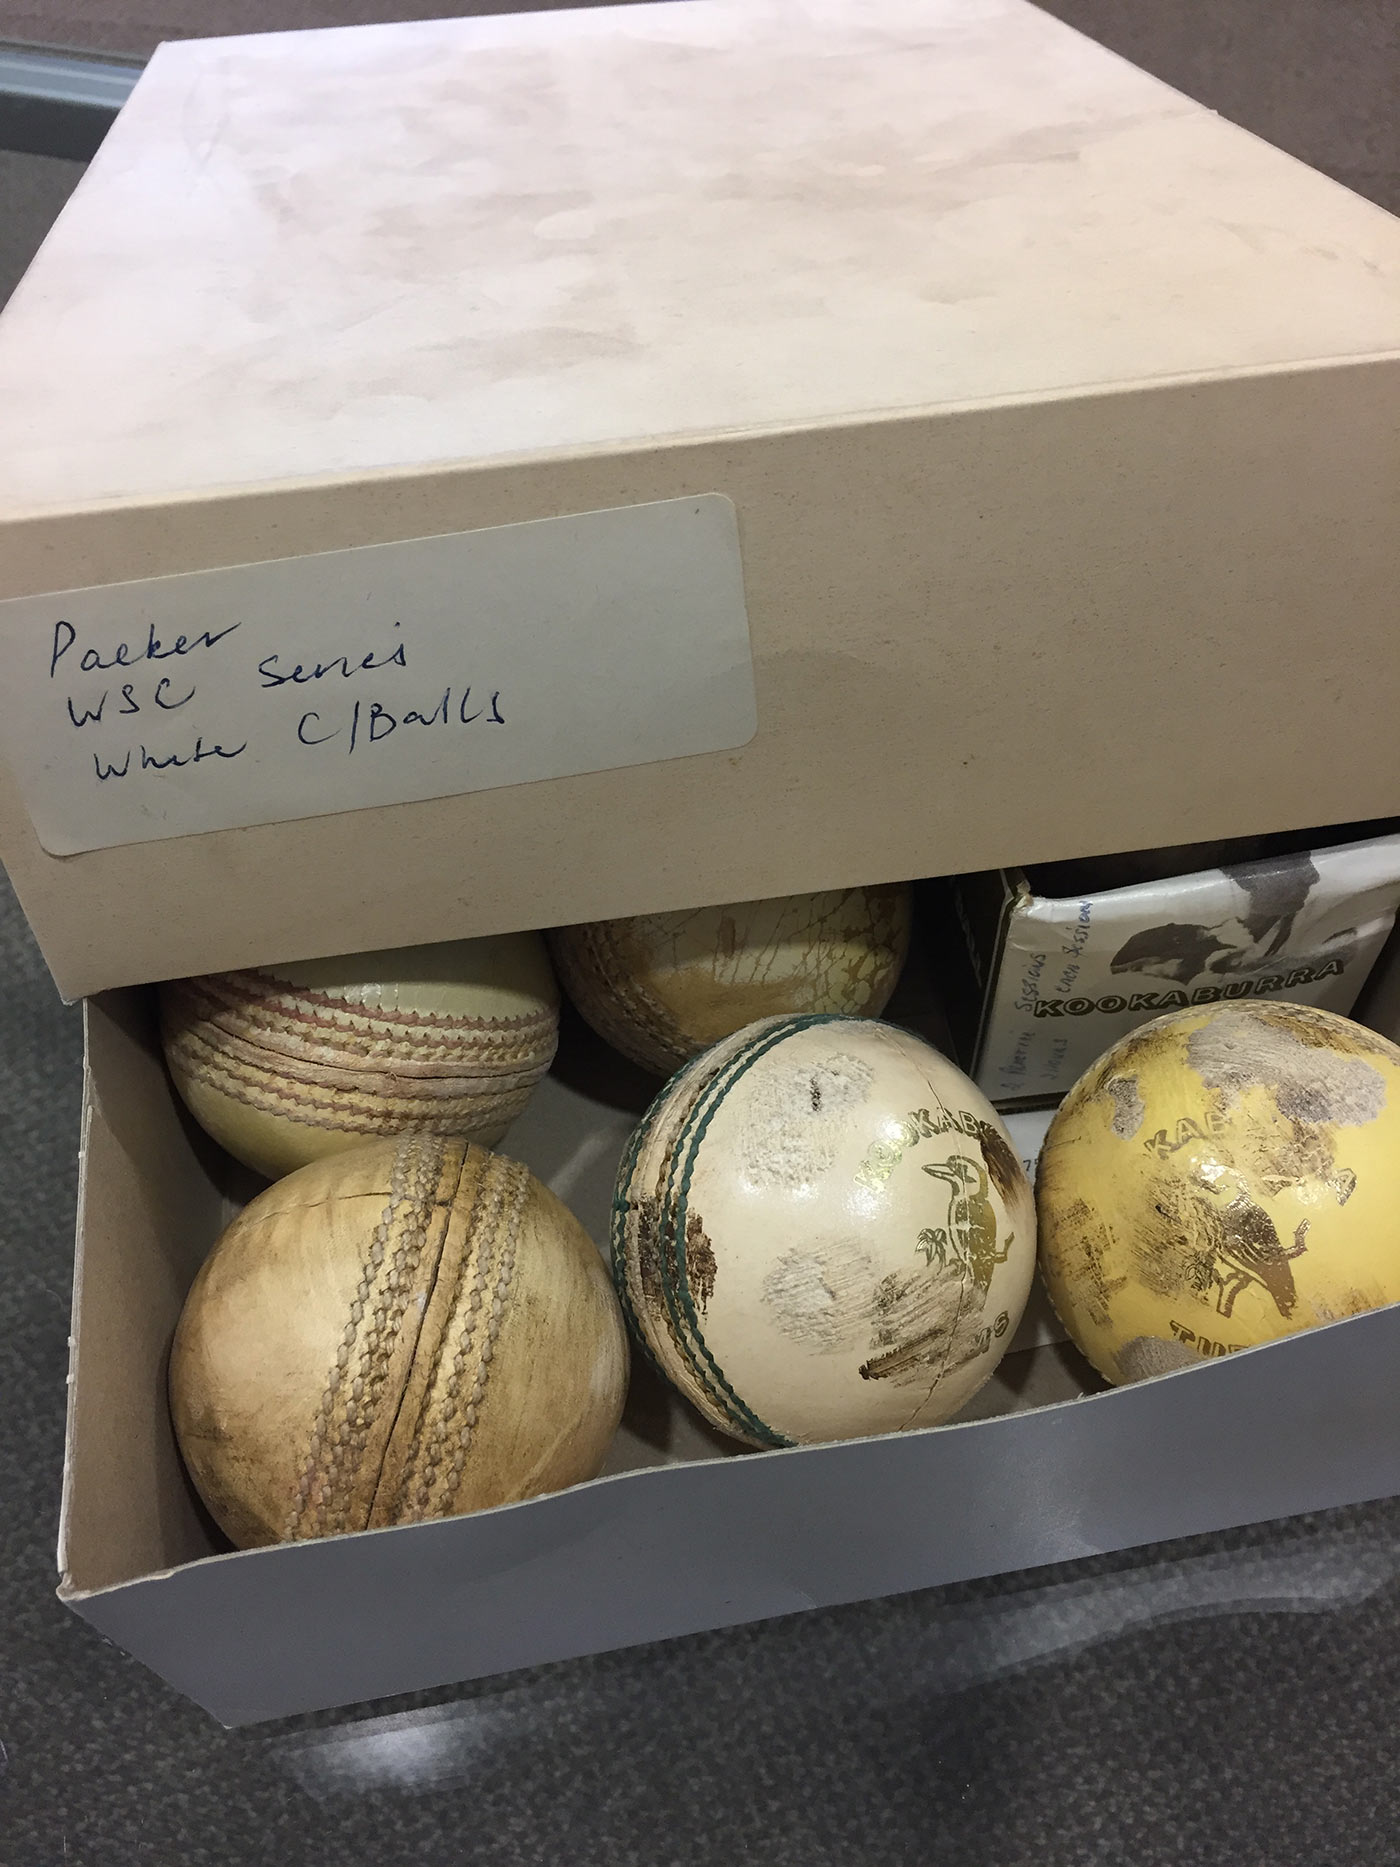 Kookaburra first made white cricket balls for World Series Cricket in the late 1970s